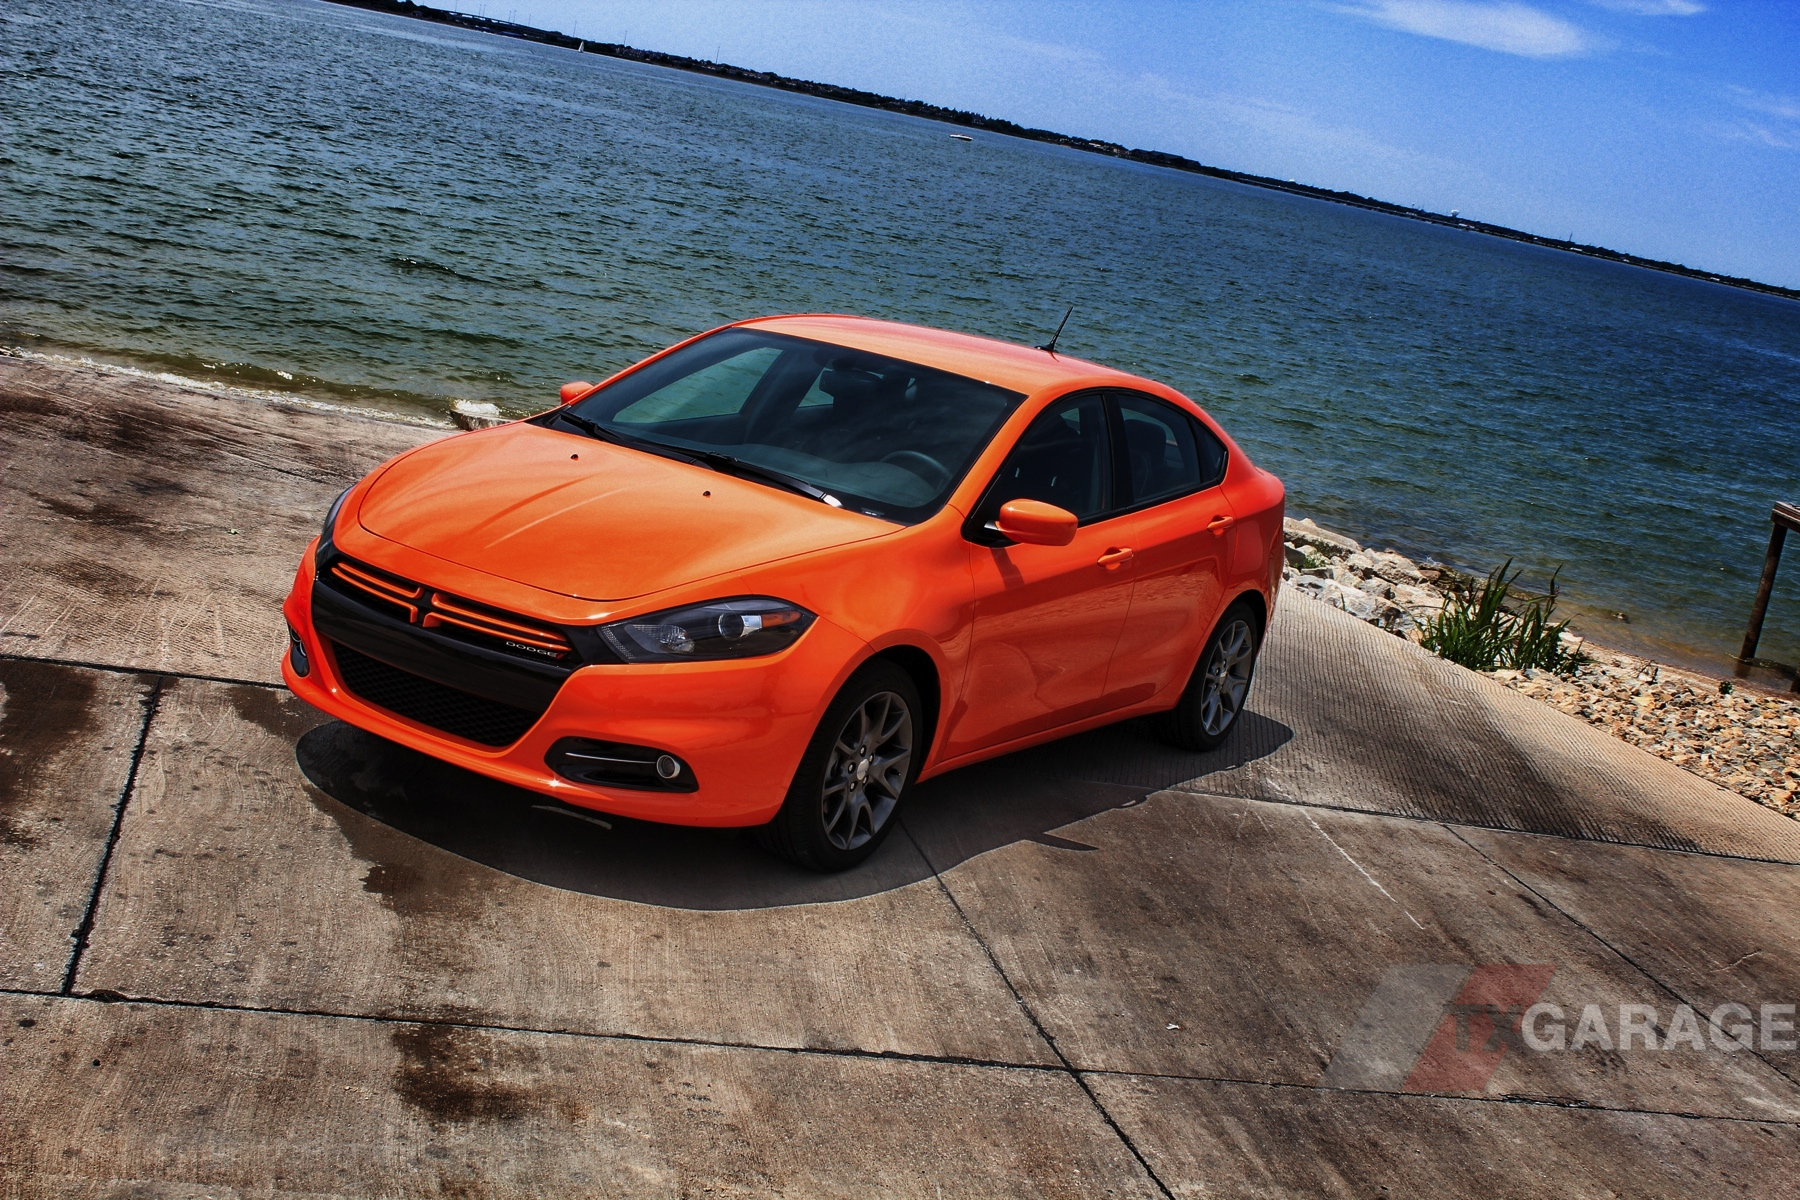 2013-Dodge-Dart-Rallye-01 | txGarage